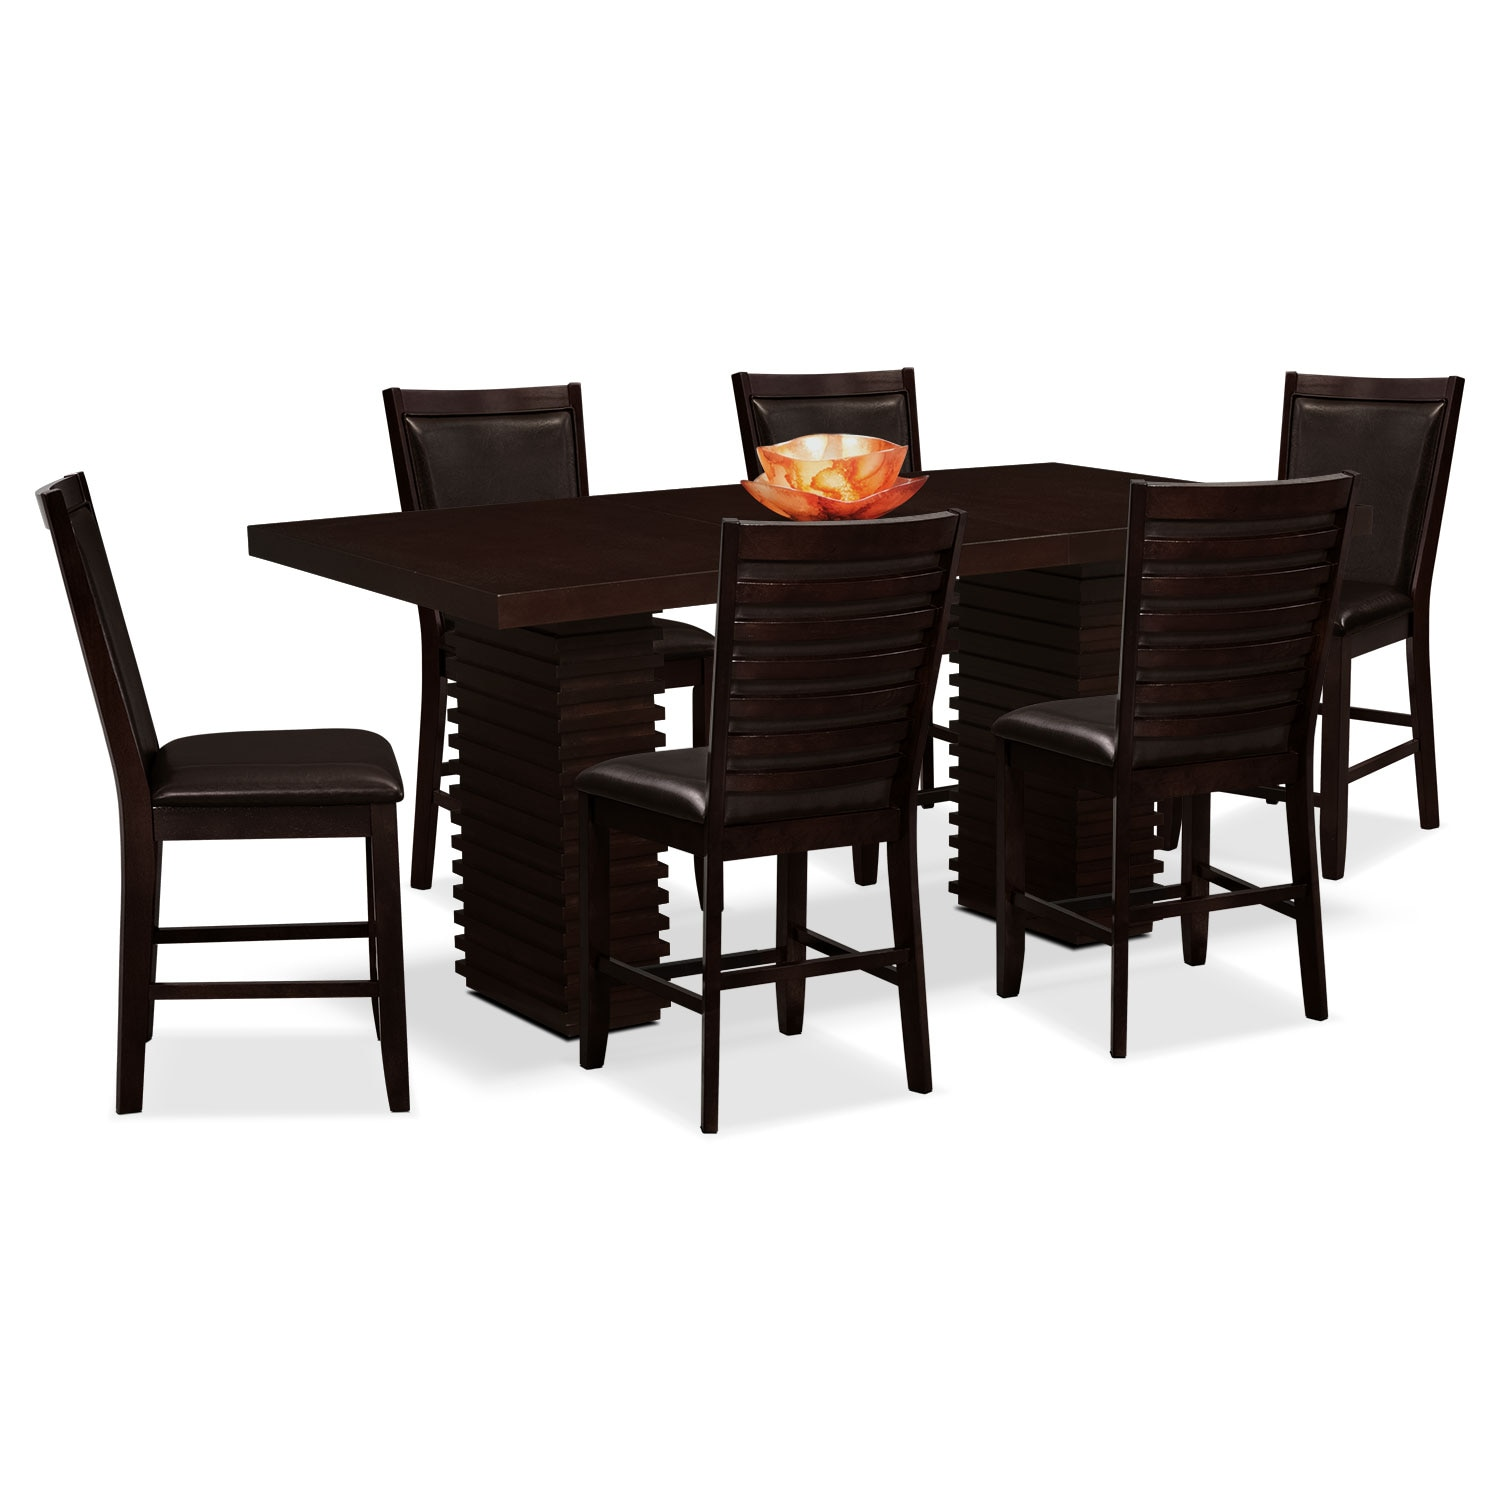 paragon table and 6 chairs brown - Steve Silver Furniture